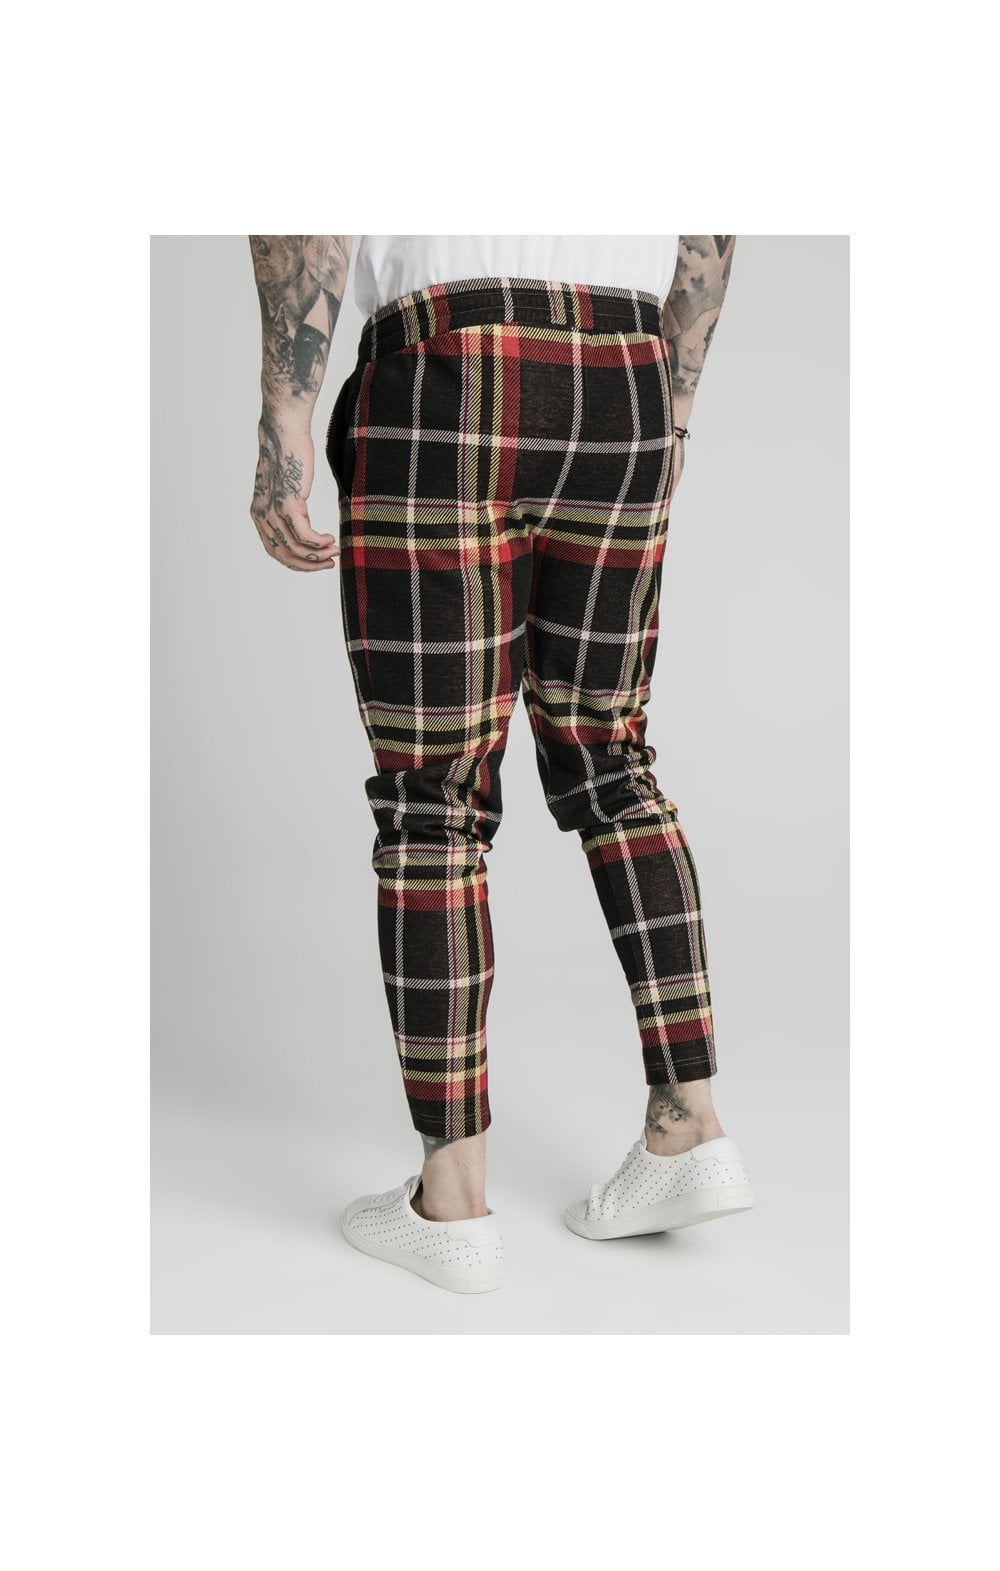 SikSilk Smart Cuff Pants - Mutil Grain Check (1)